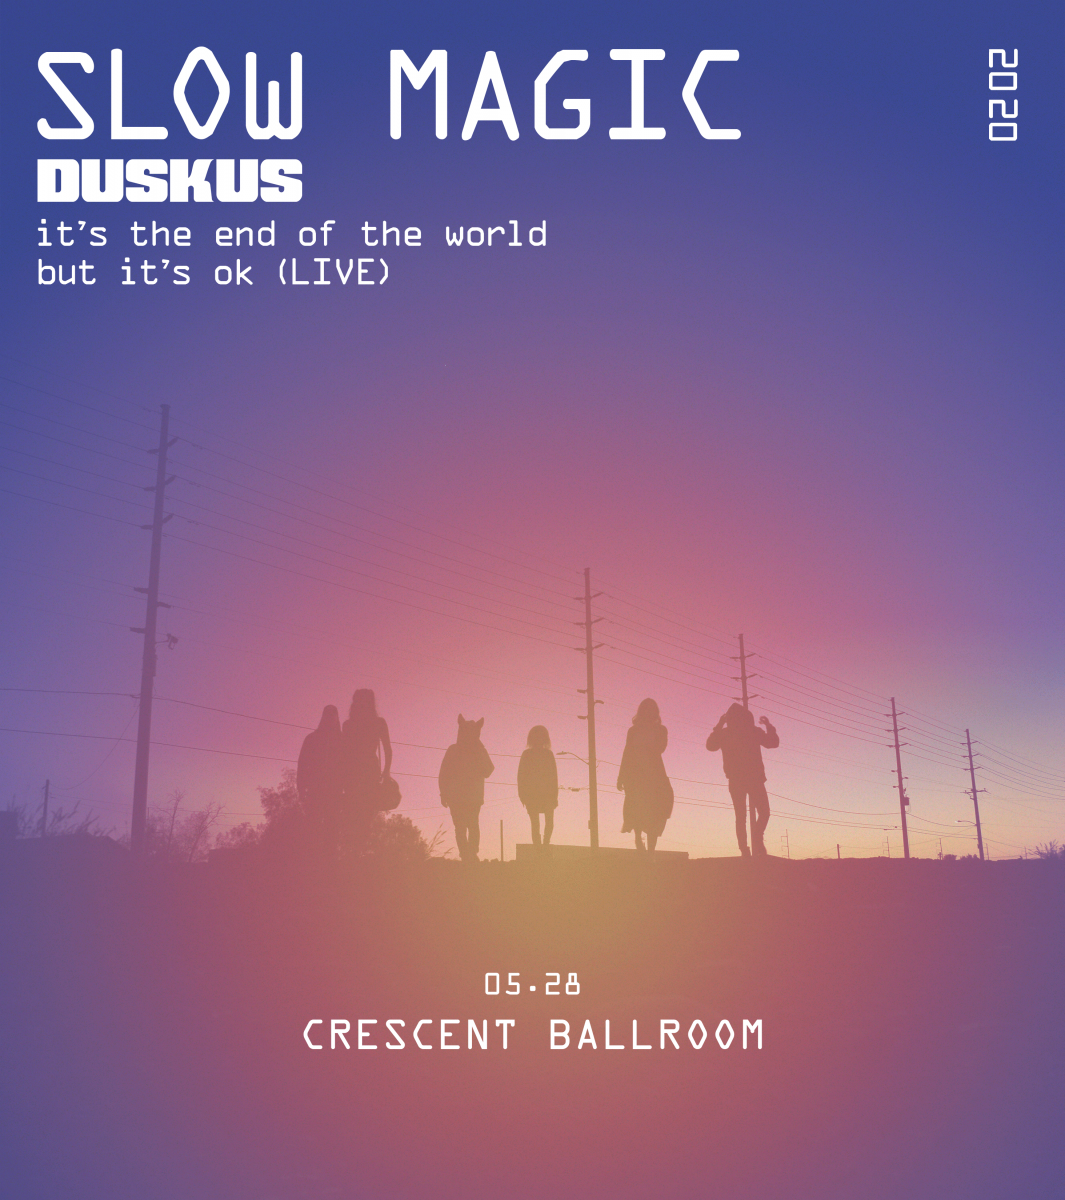 Flyer for Slow Magic